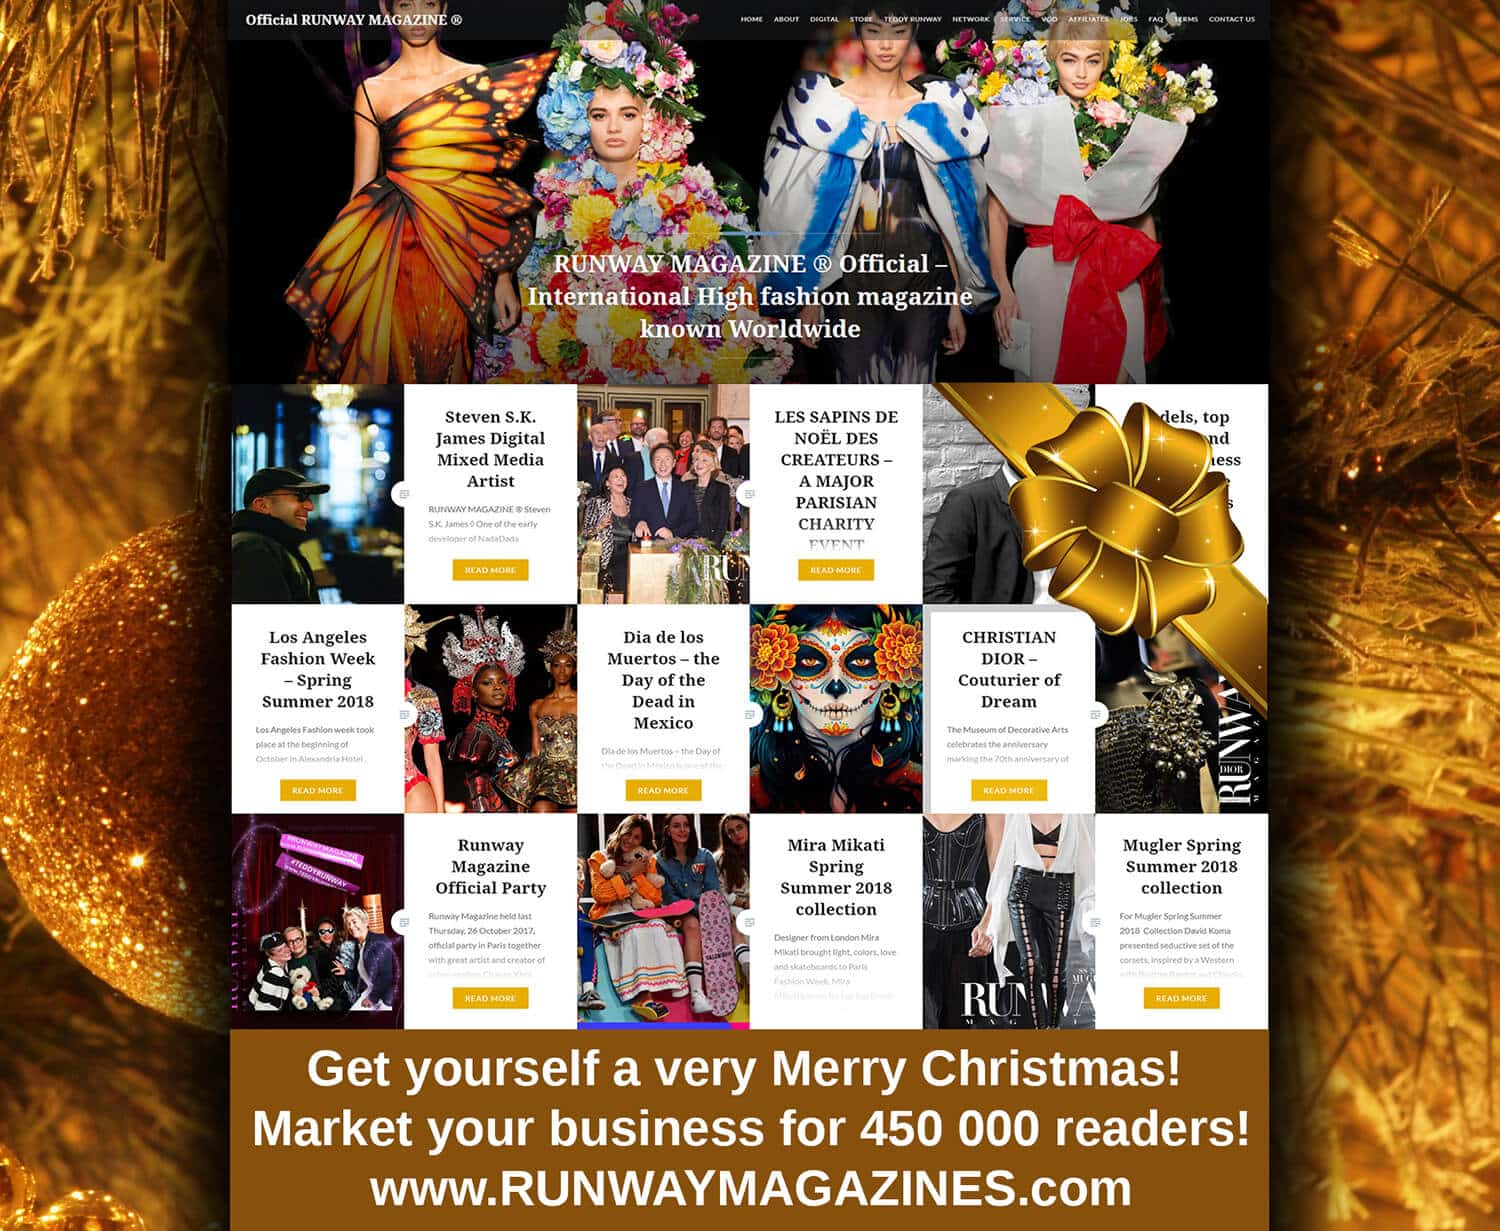 Runway-Magazine-Official-France-USA-web-site-NewYork-Paris-gold RUNWAY MAGAZINE - Merry Your Market for Christmas